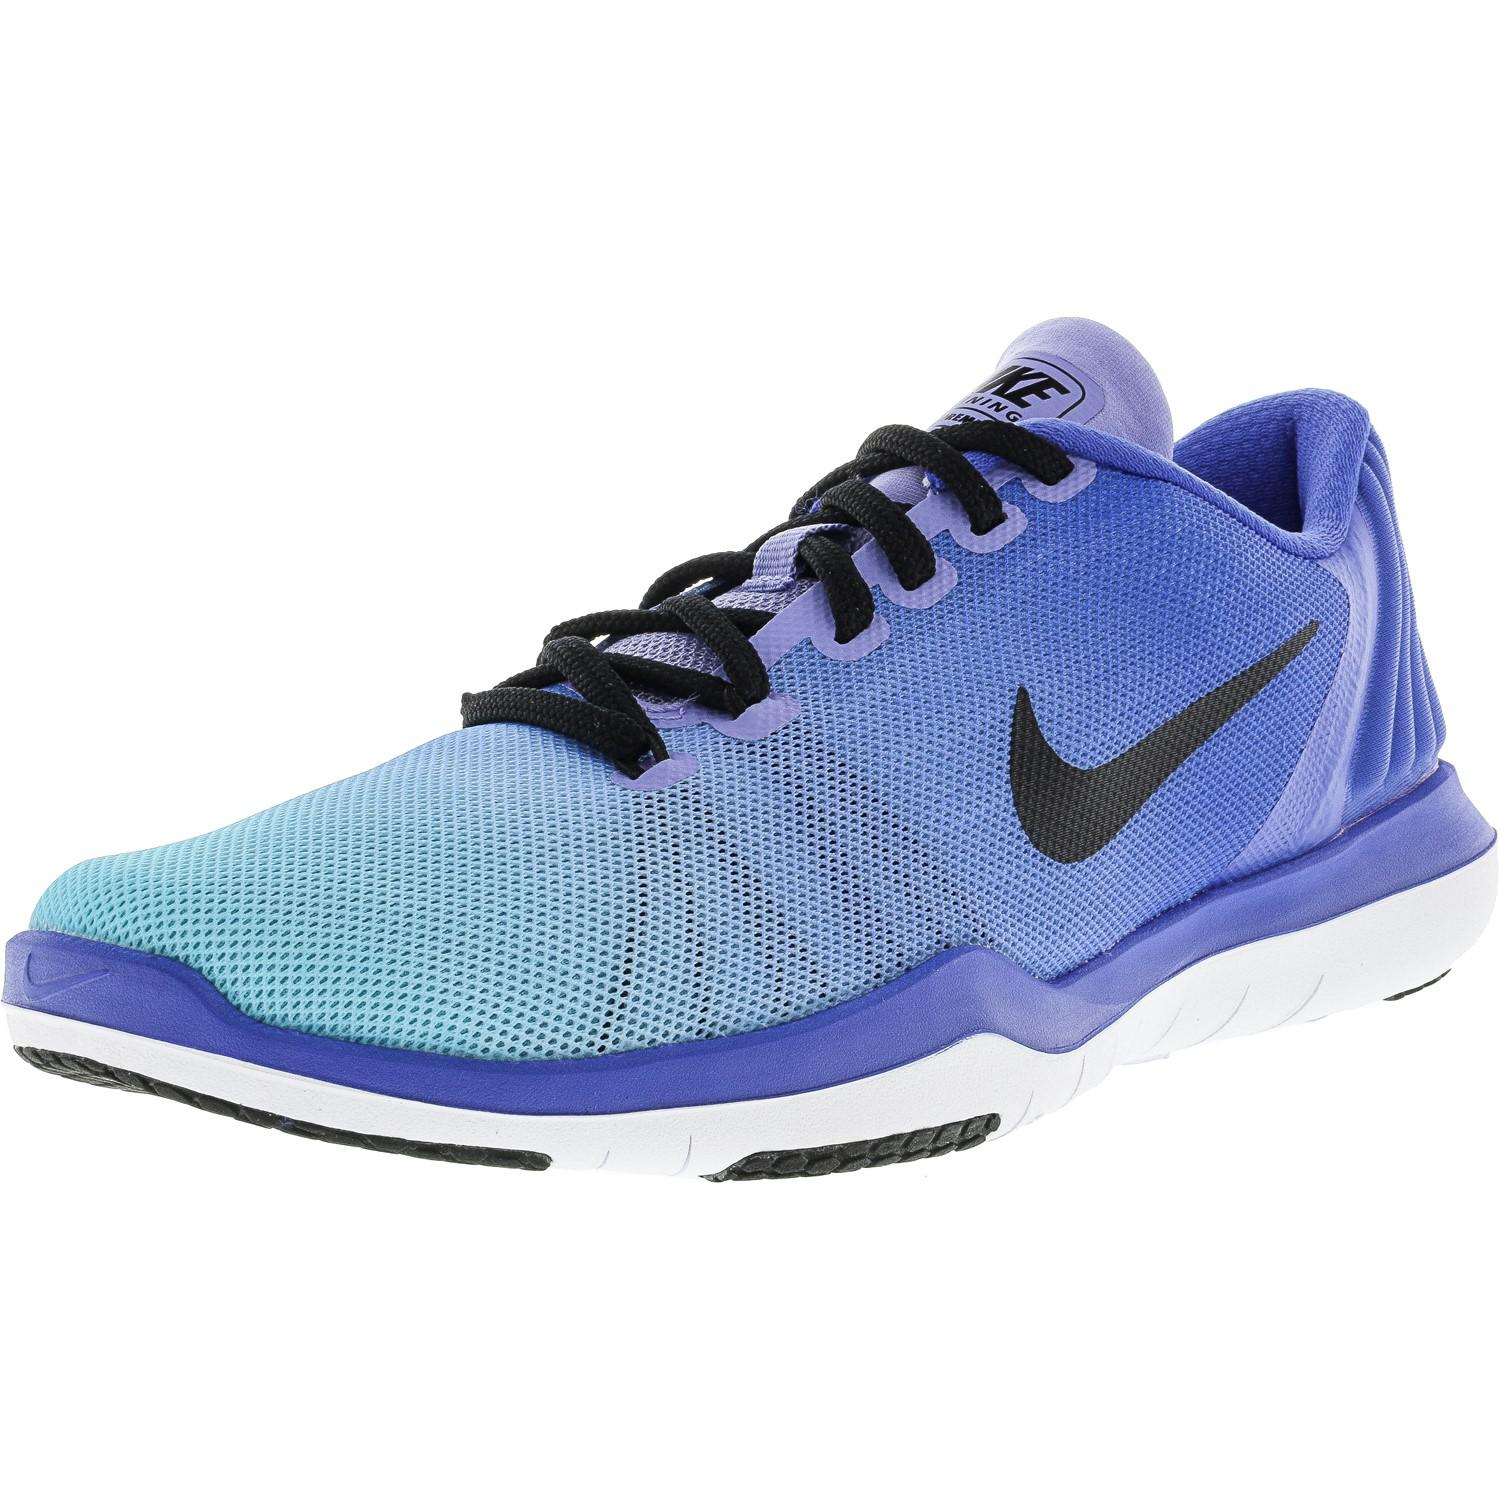 408ee2fa4930 Lyst - Nike Flex Supreme Tr 5 Fade Medium Blue   Black Still Ankle ...